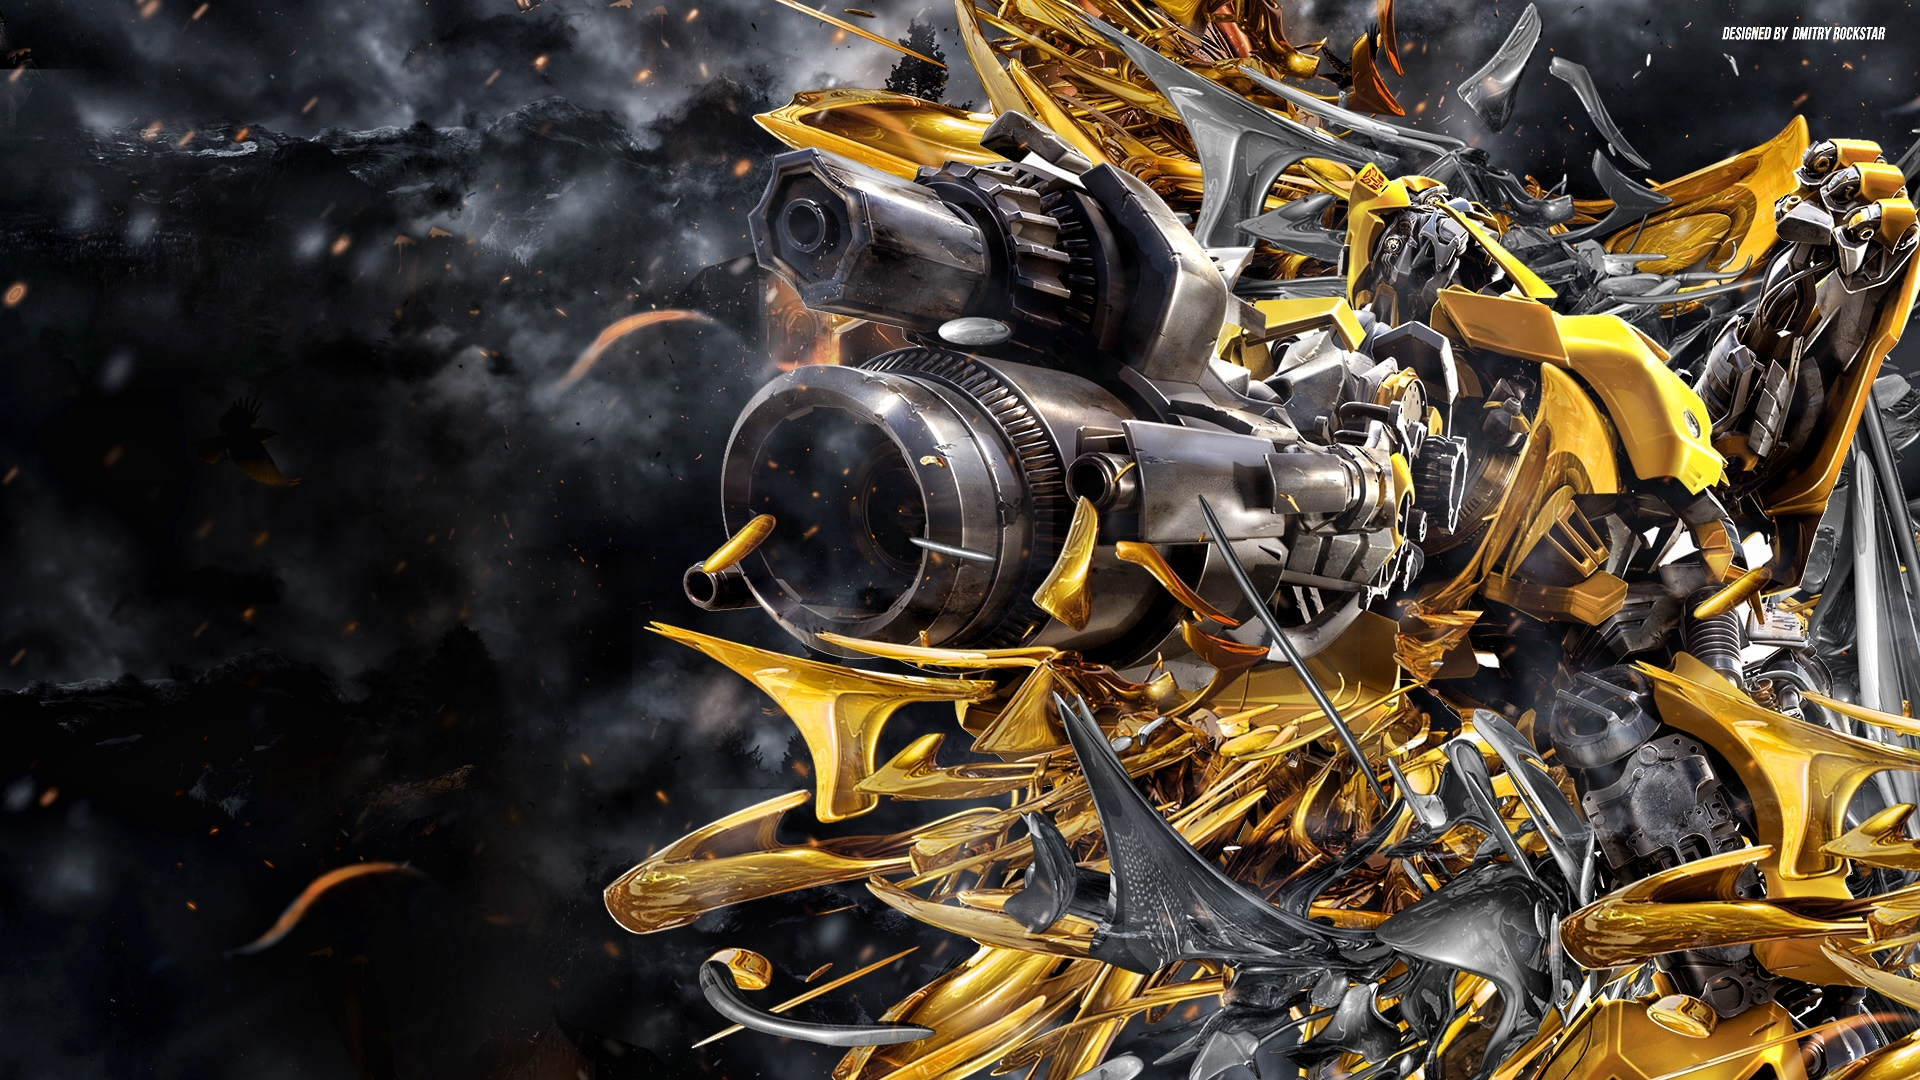 Transformers Bumblebee Hd Age Of Extinction